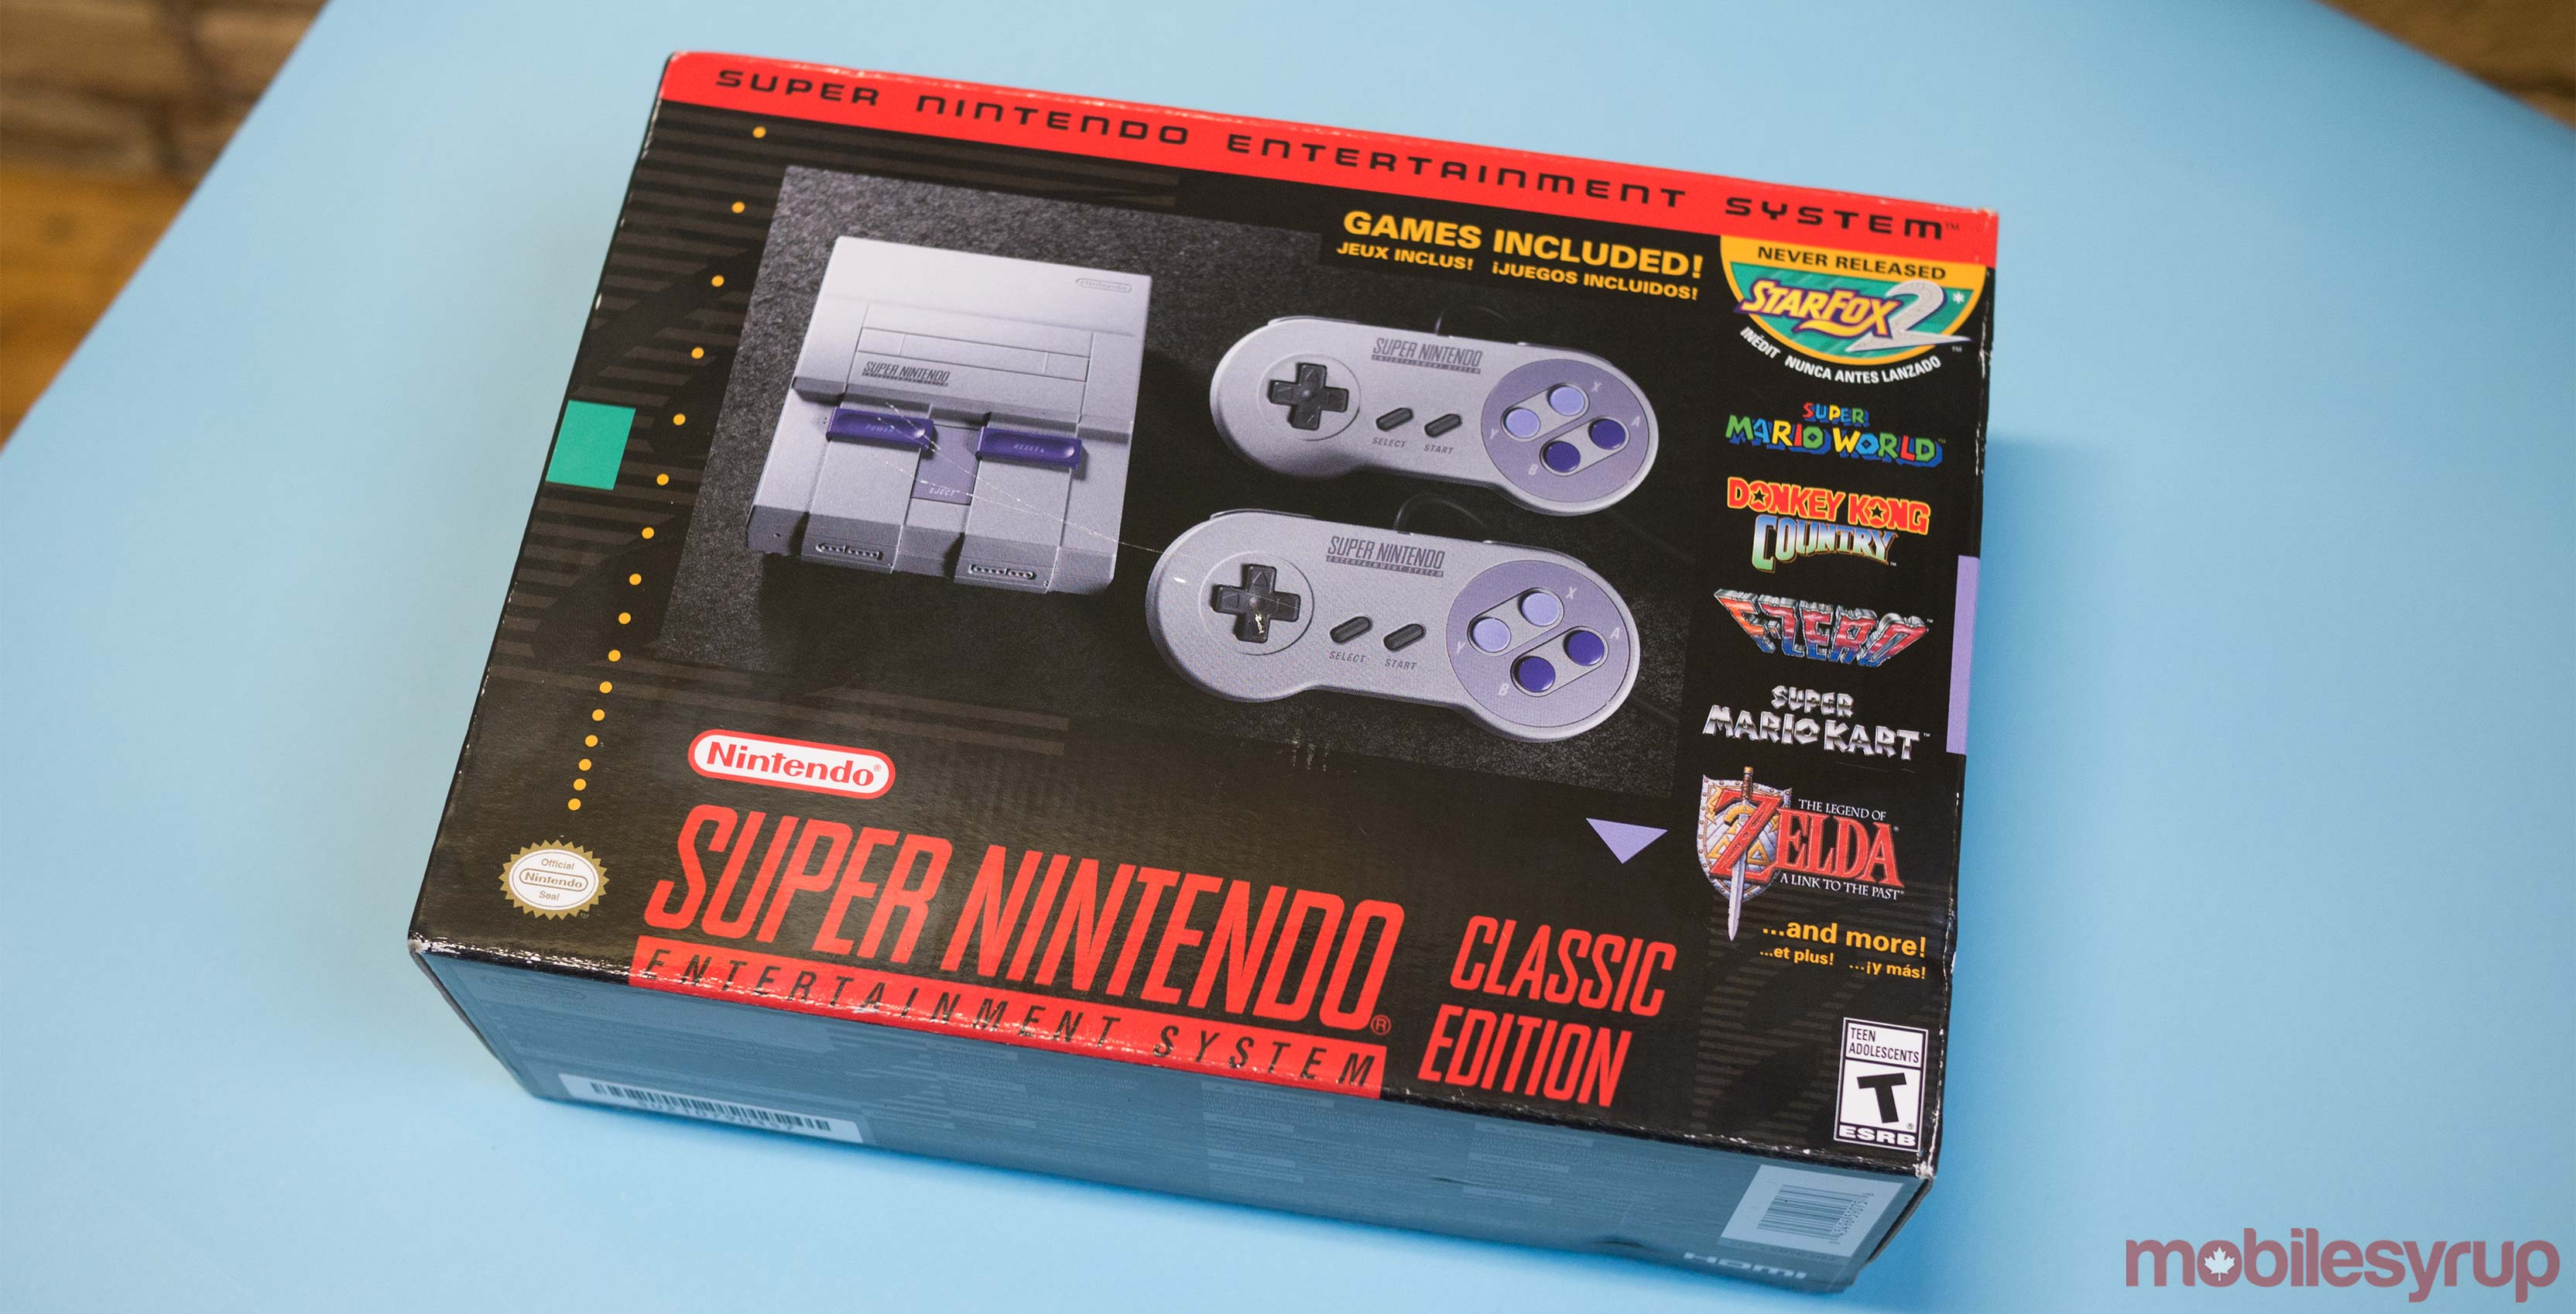 SNES Classic in box